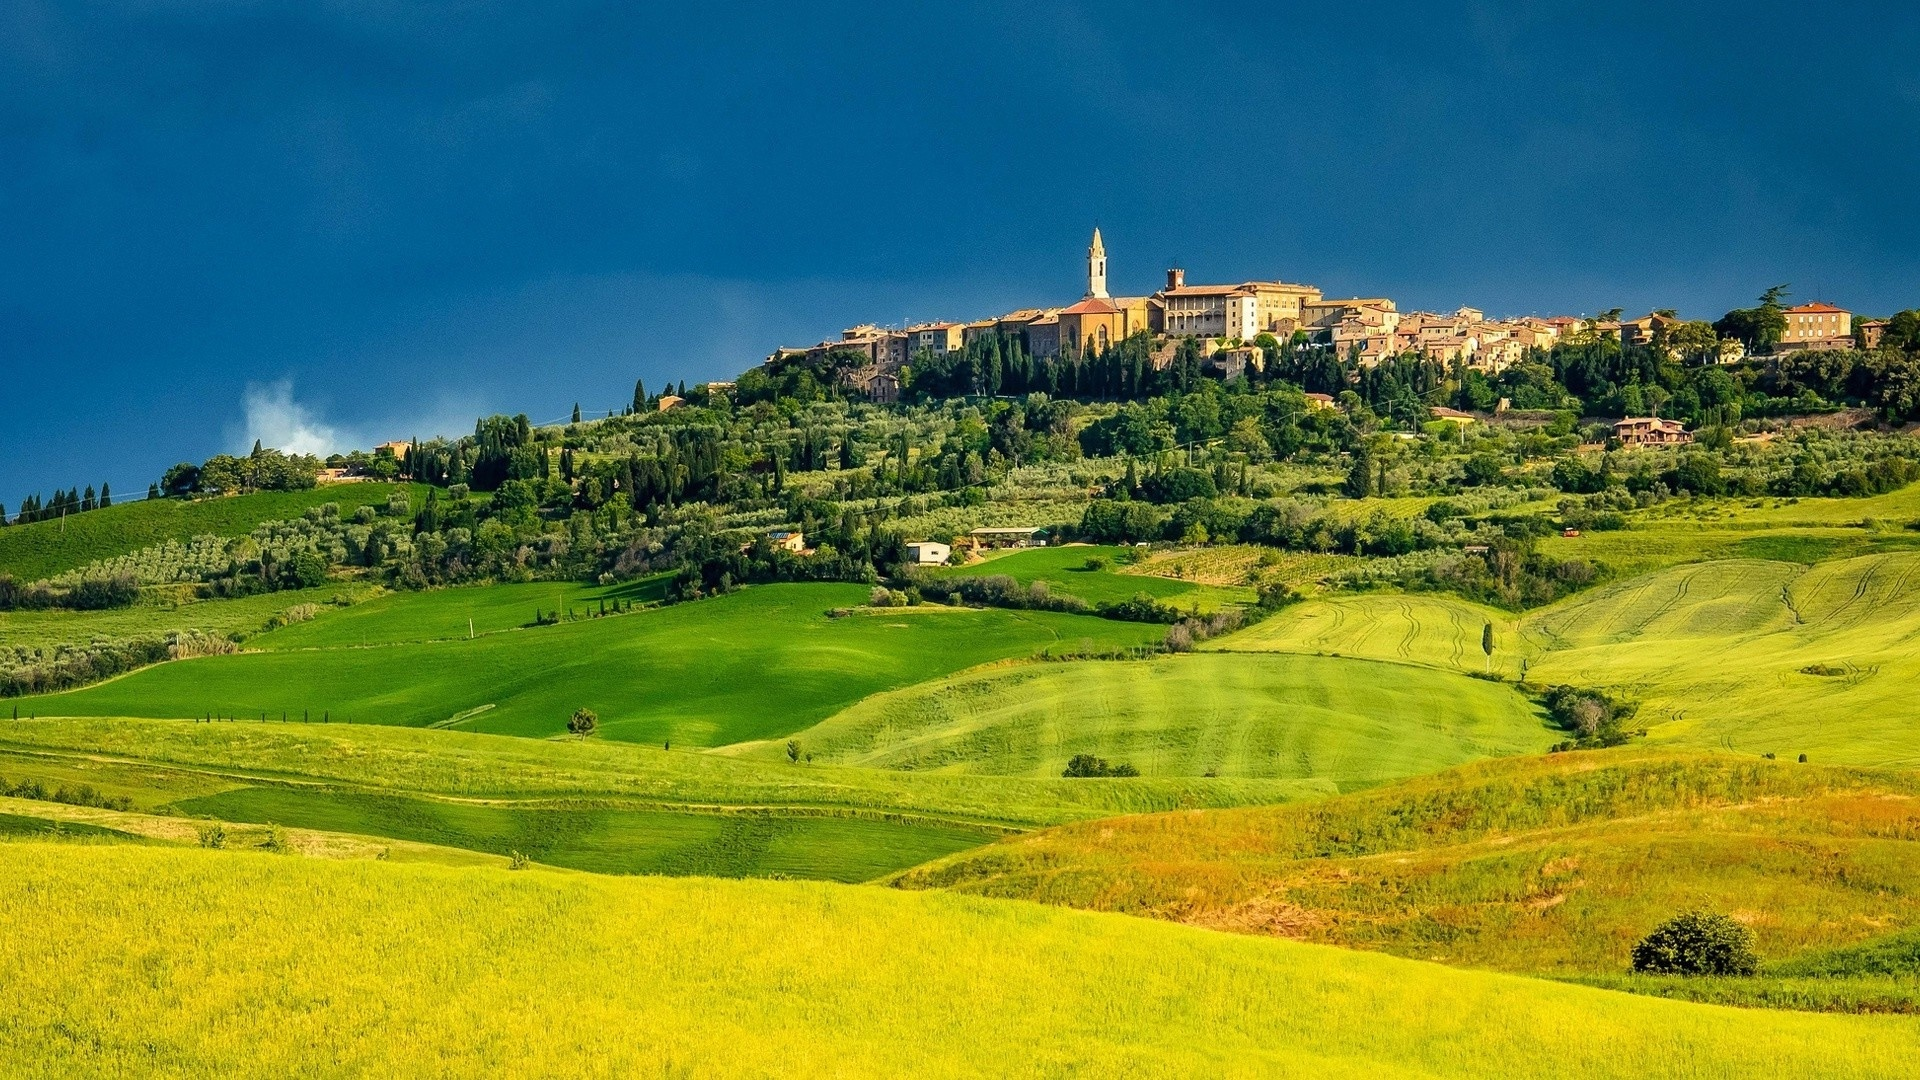 Tuscany wallpaper hd